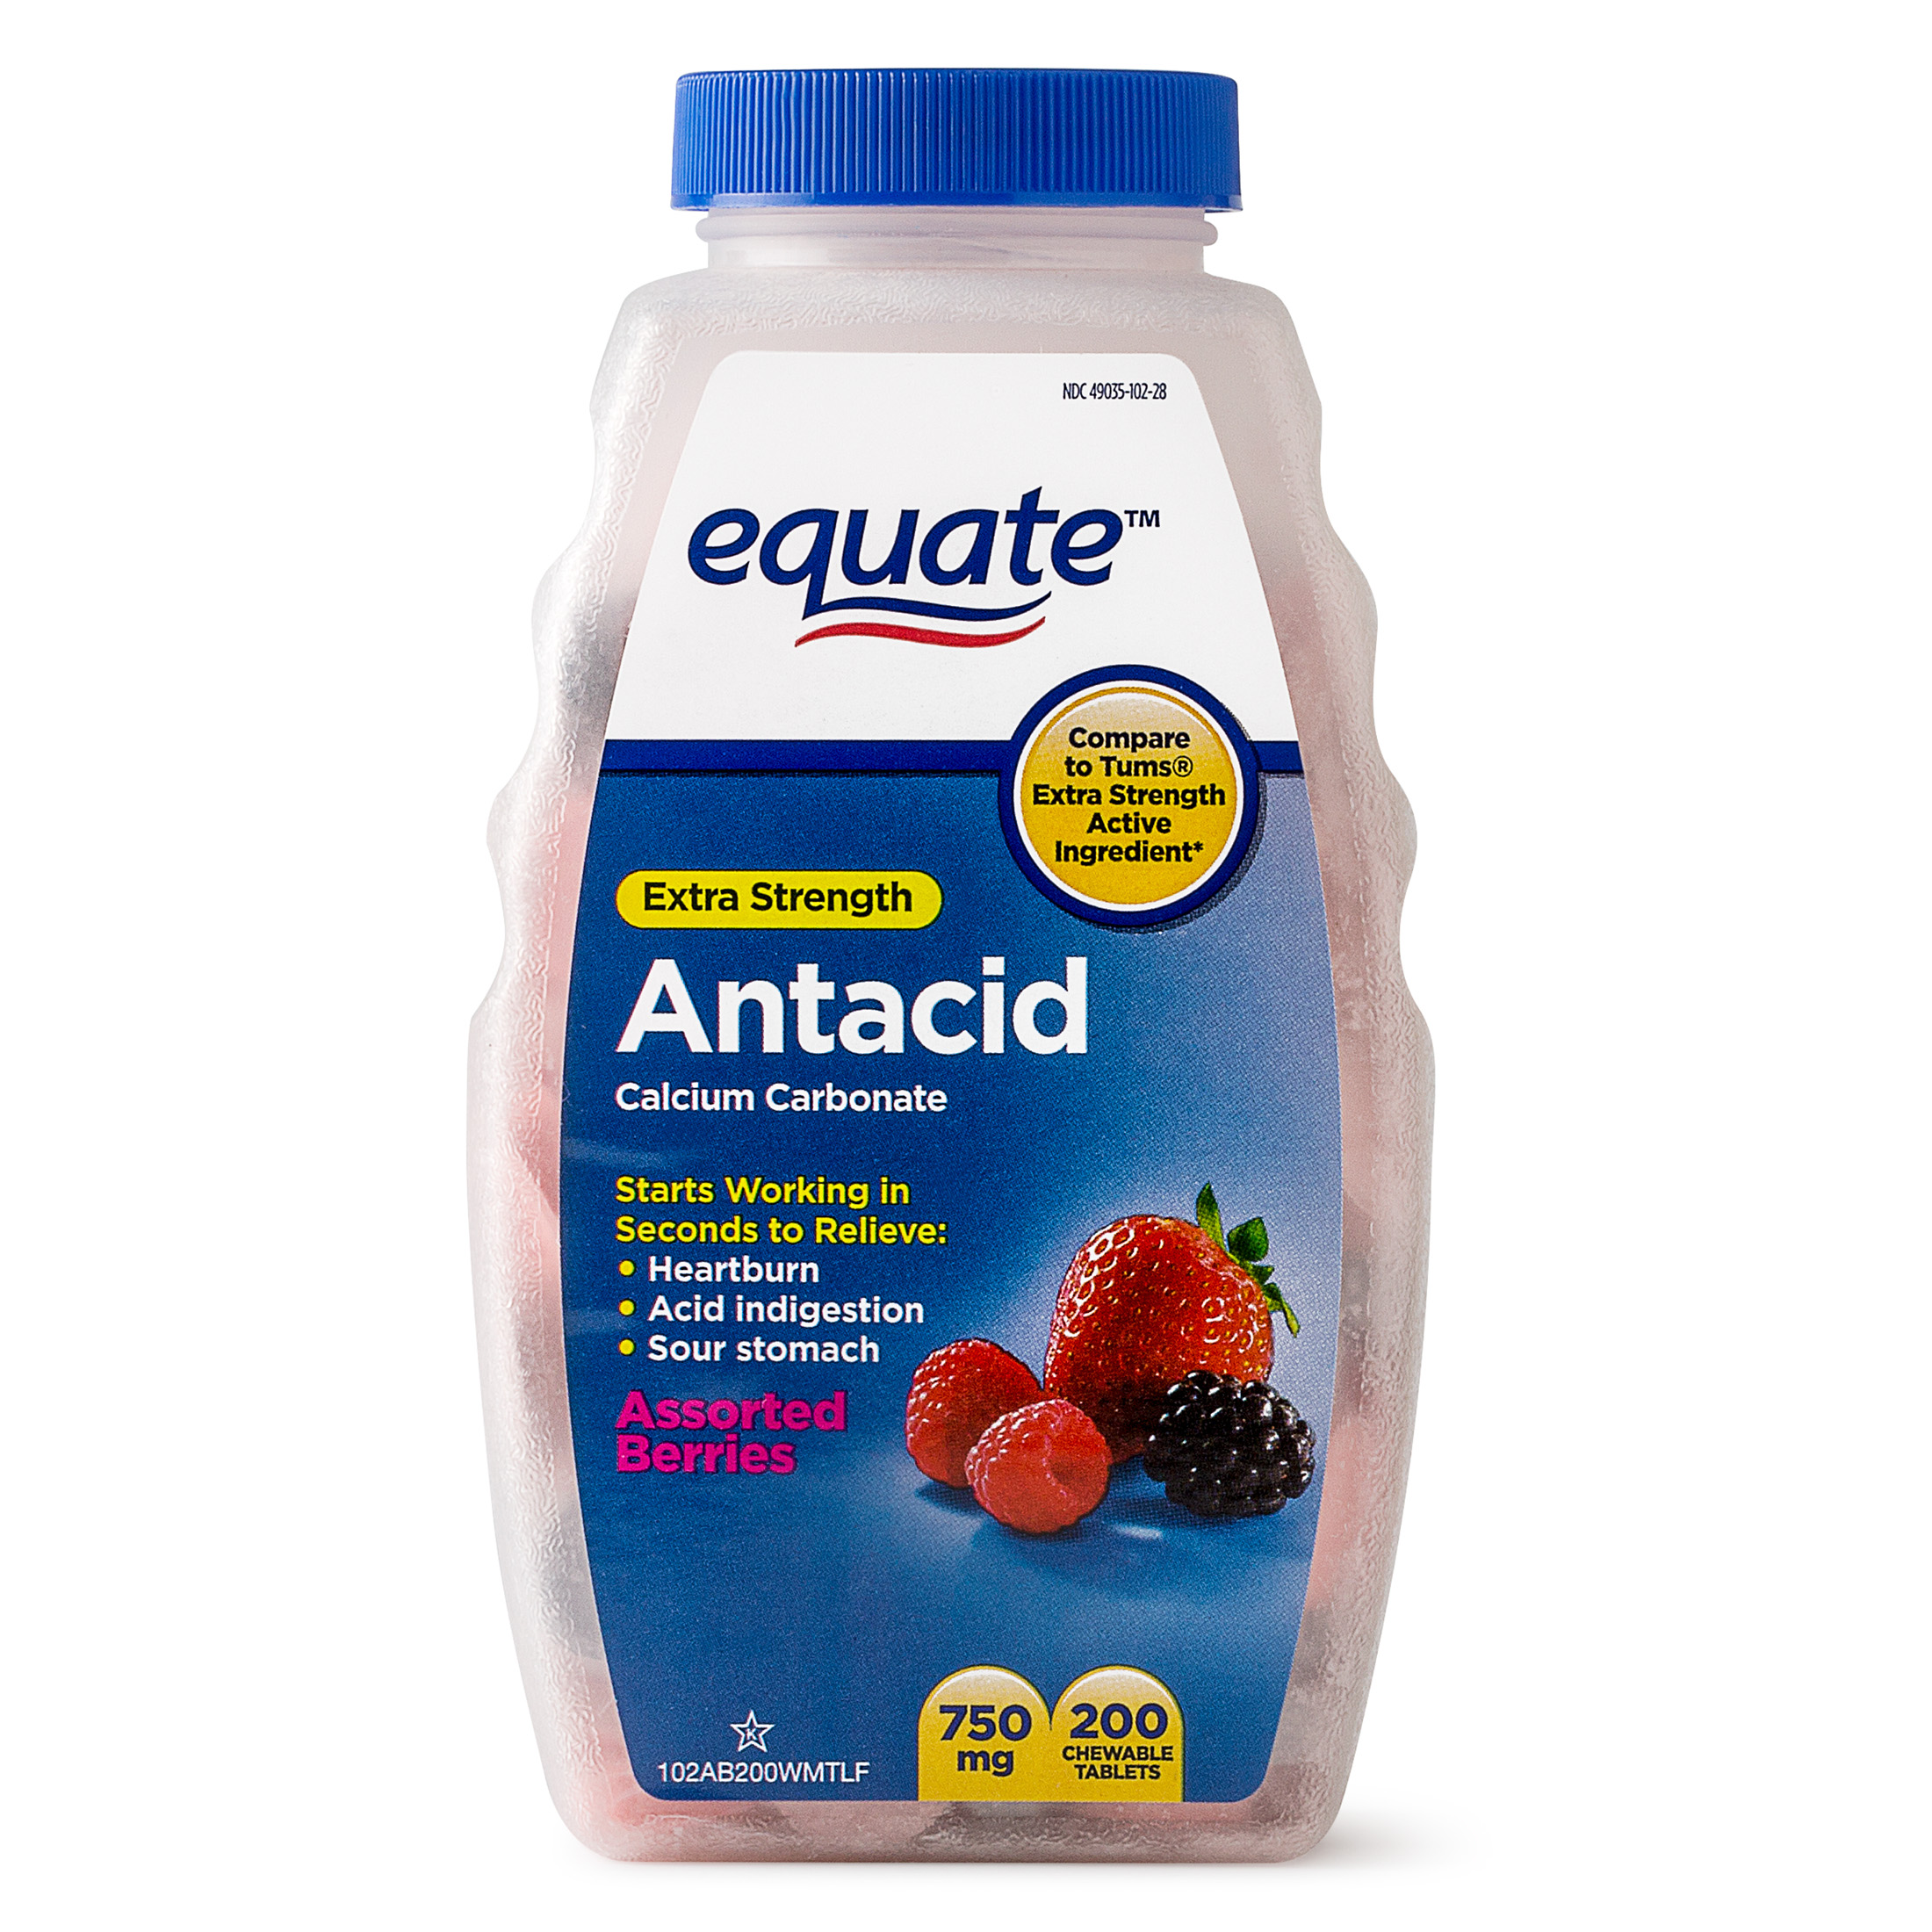 Equate Extra Strength Antacid Assorted Berries Chewable Tablets, 750 mg, 200 Count